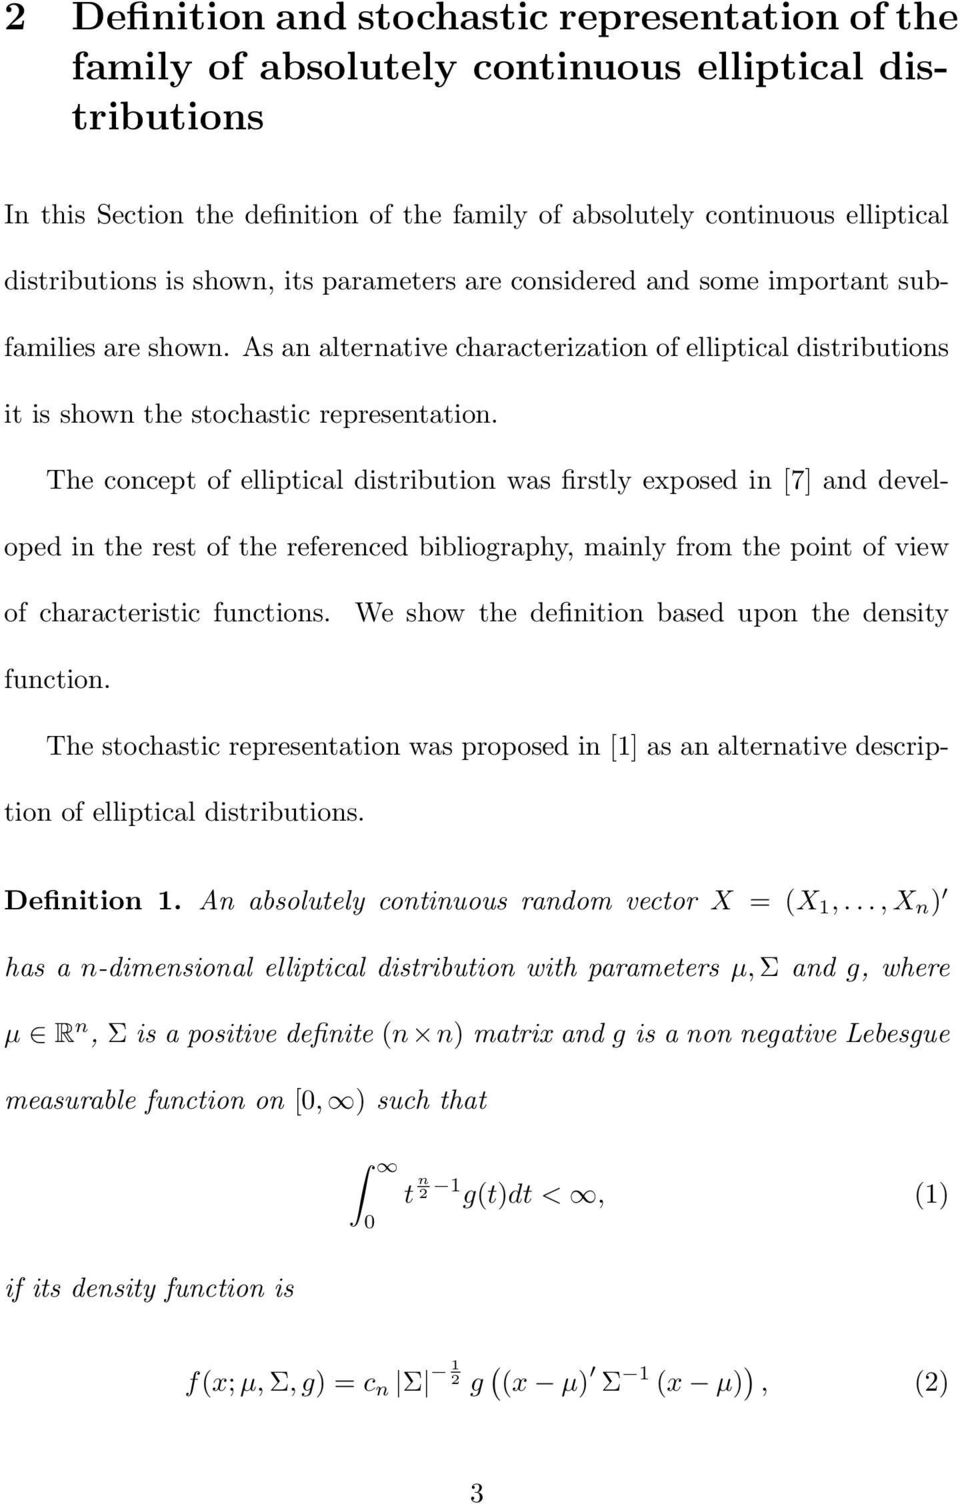 The concept of elliptical distribution was firstly exposed in [7 and developed in the rest of the referenced bibliography, mainly from the point of view of characteristic functions.